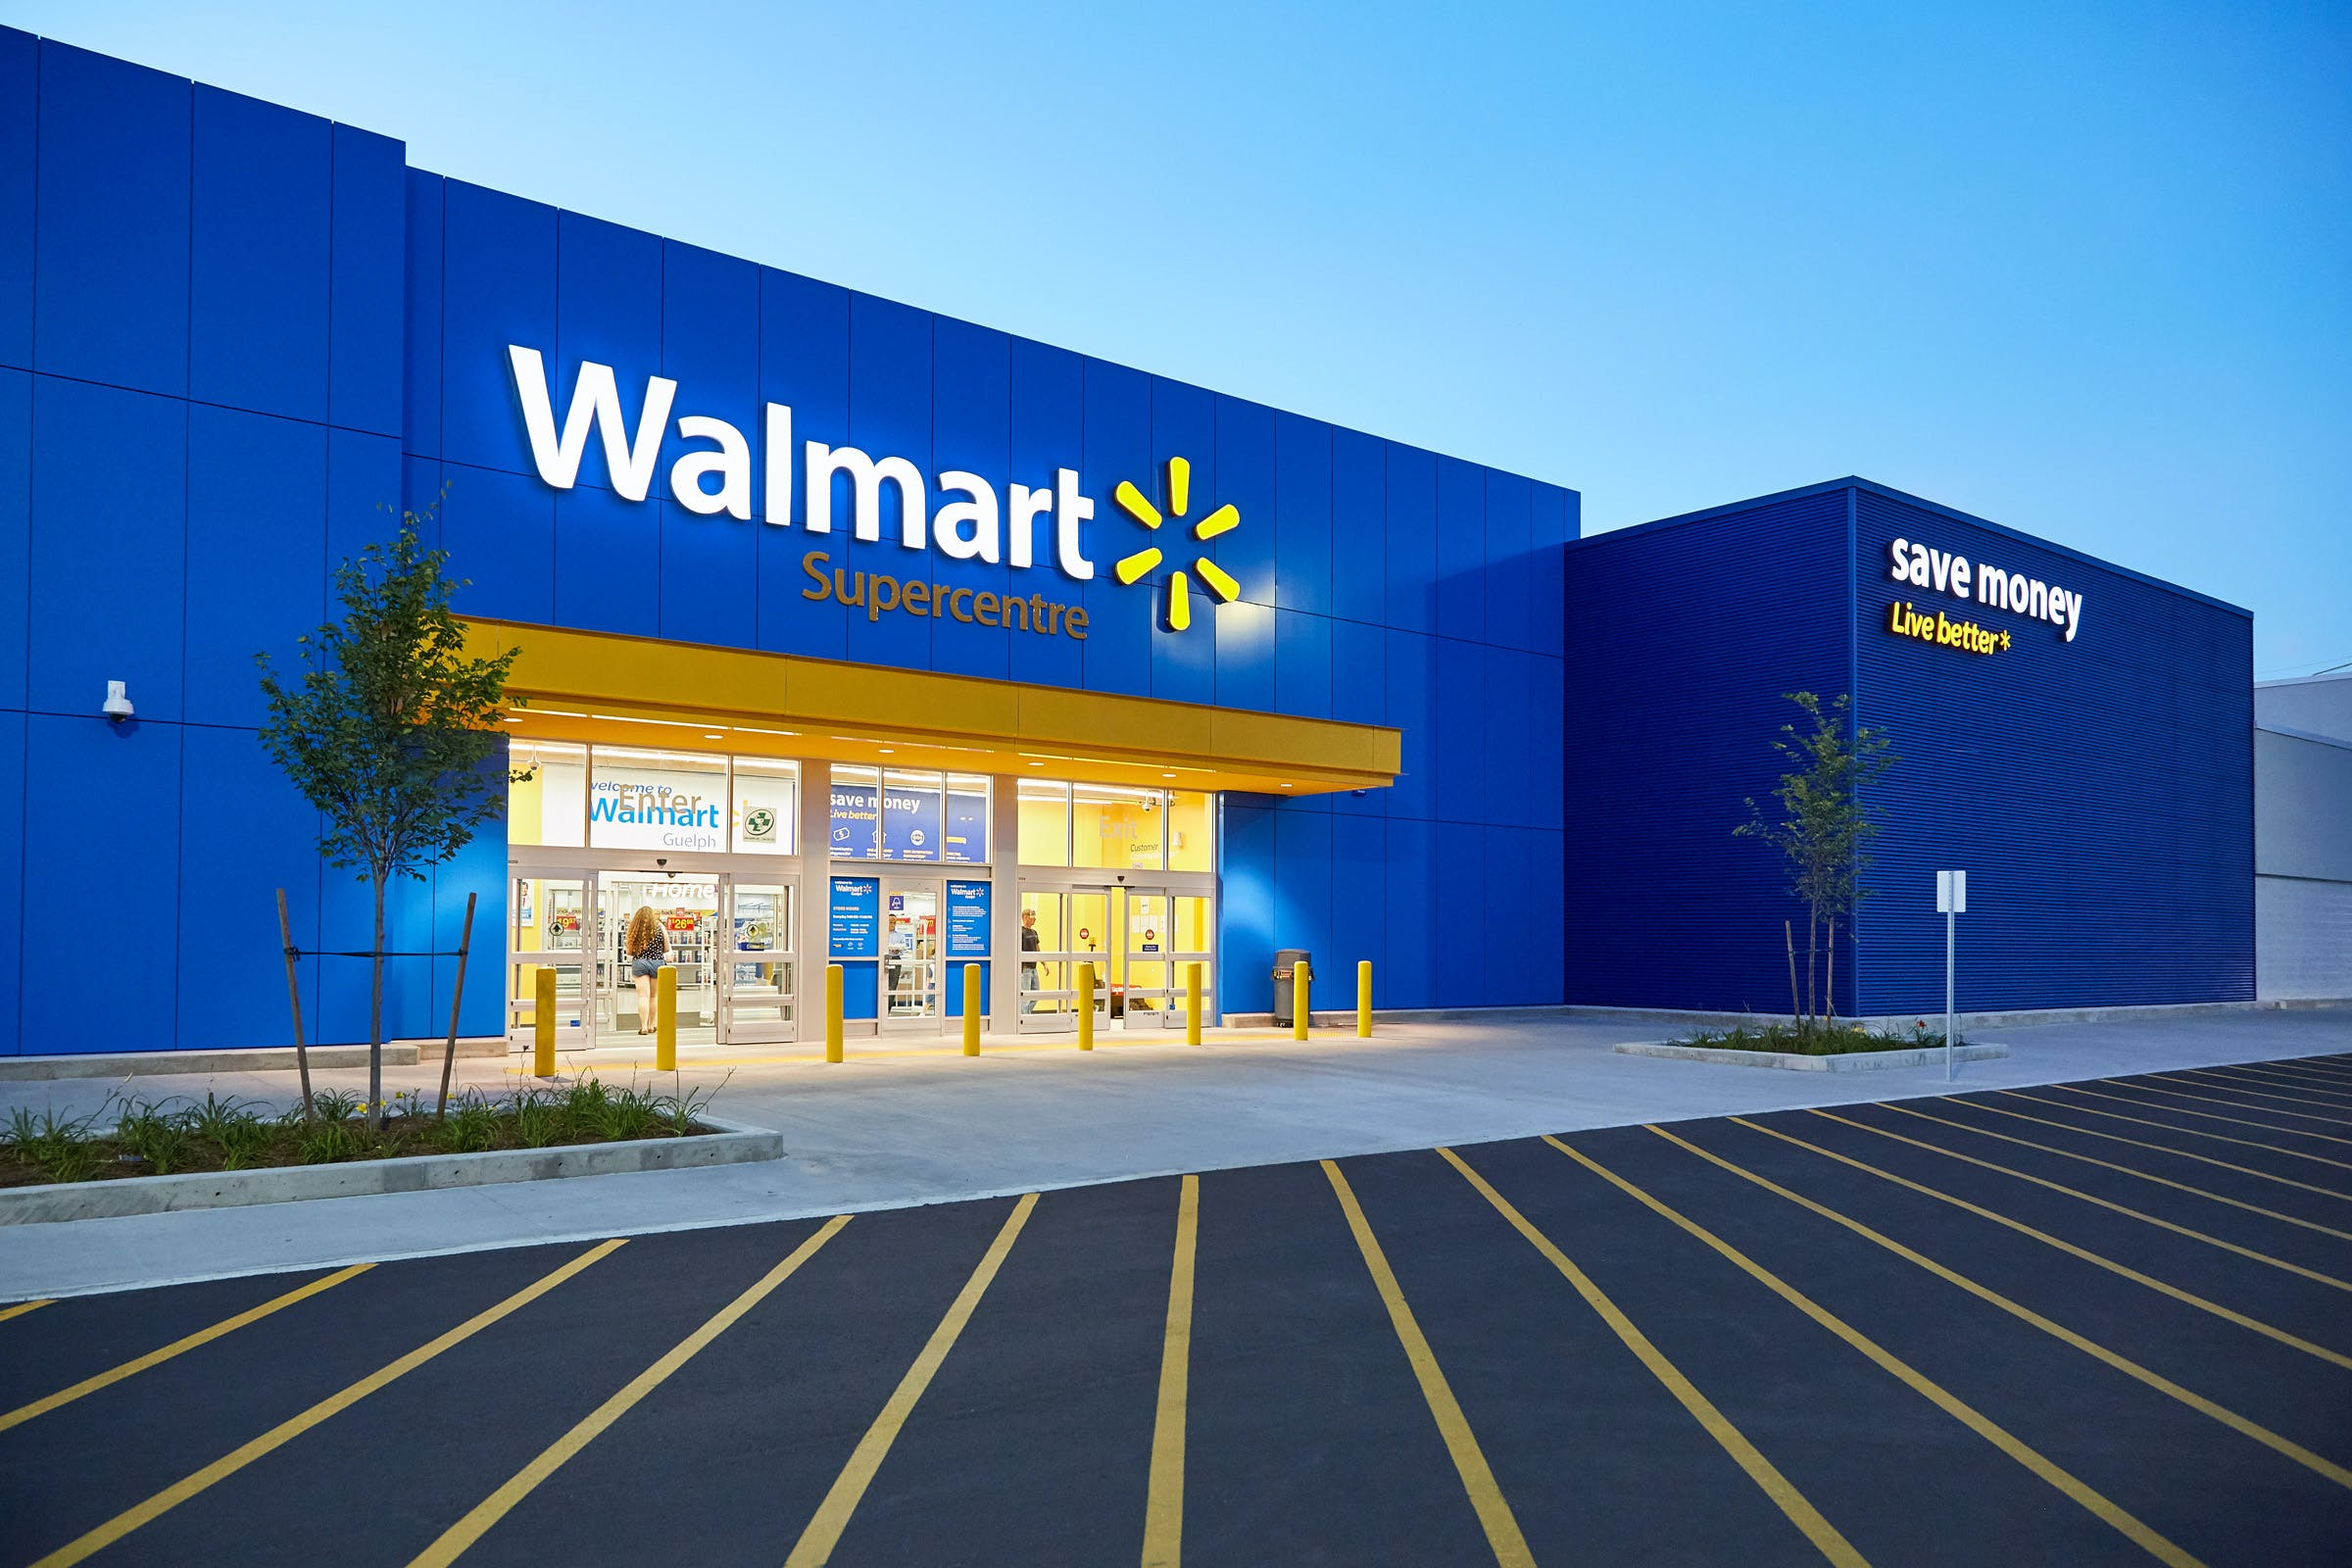 Walmart-The world's largest retailer looks at the smallest details.